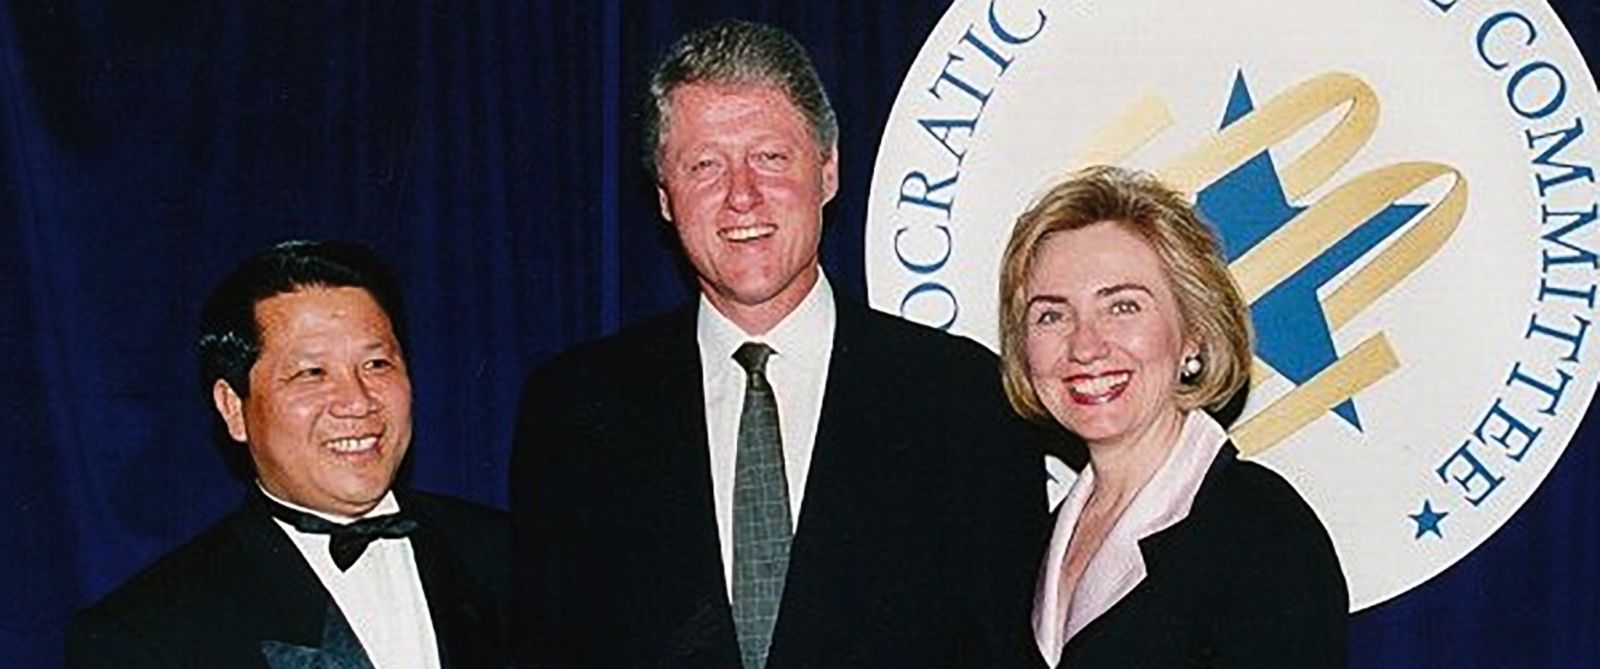 PHOTO: Np Lap Seng posed with then-President Bill Clinton and Hillary at a Democratic National Committee event in the late 1990s.